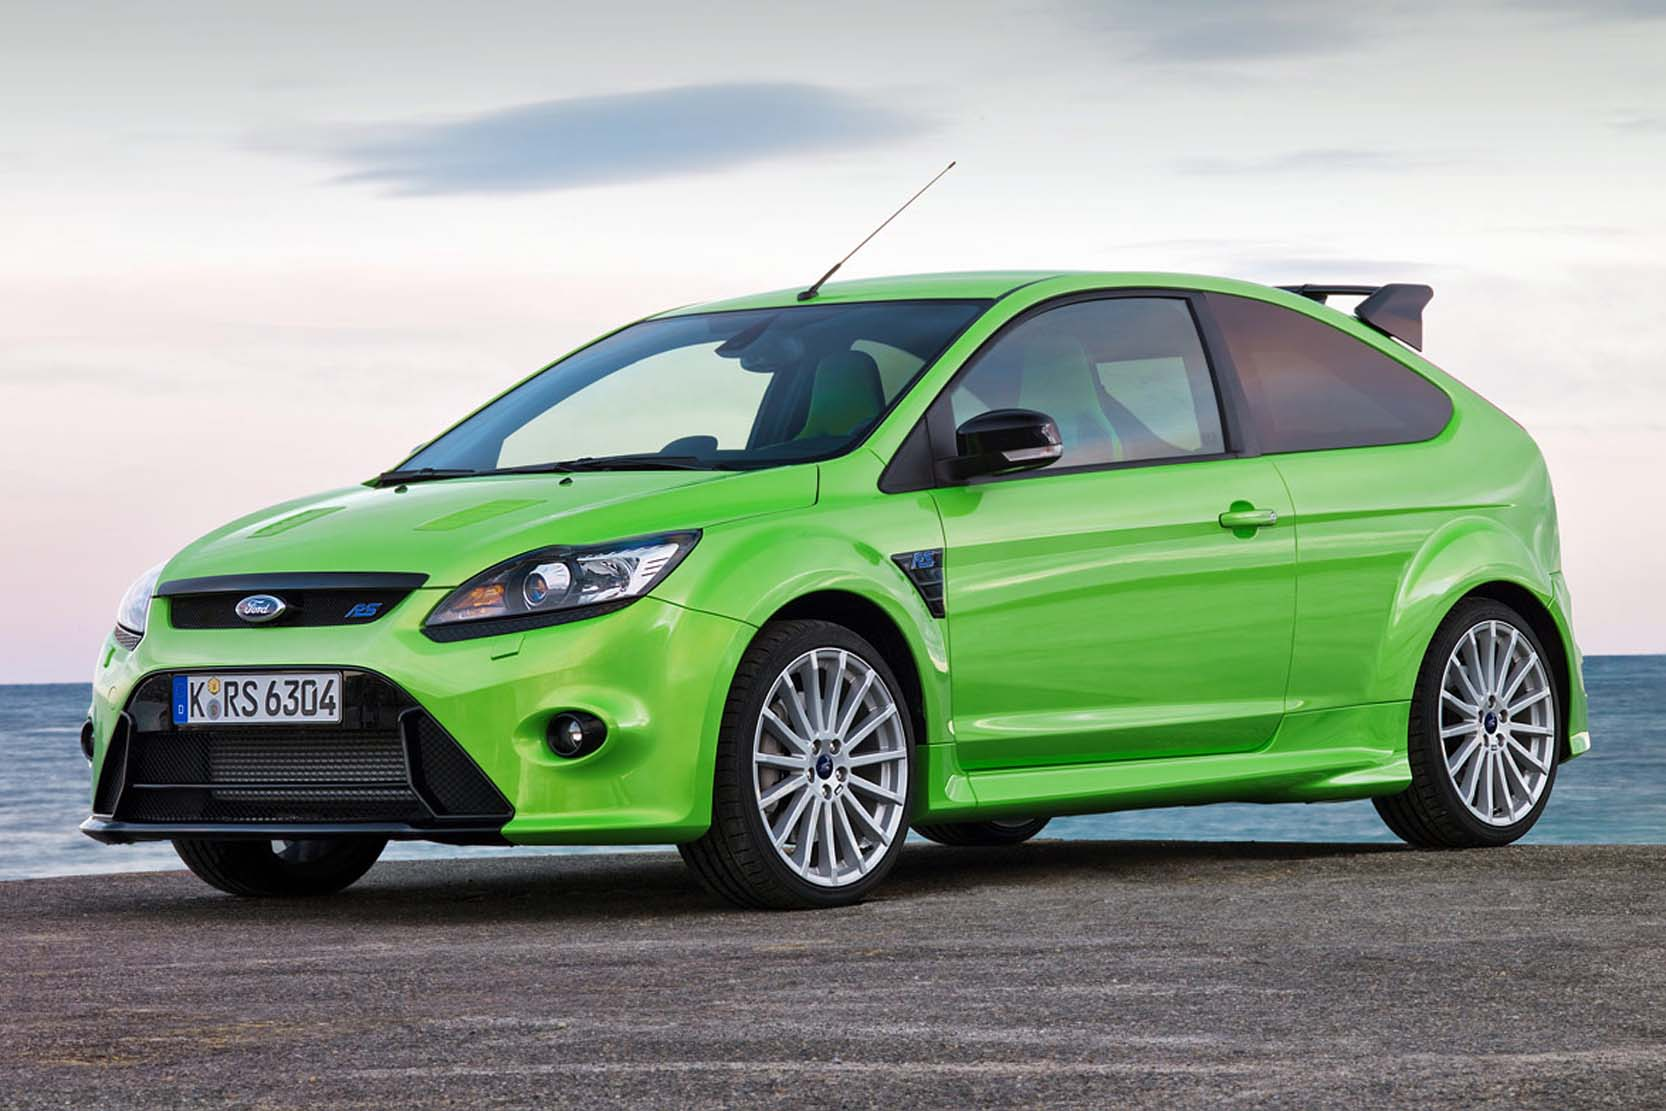 Ford S-max 2009 photo - 6